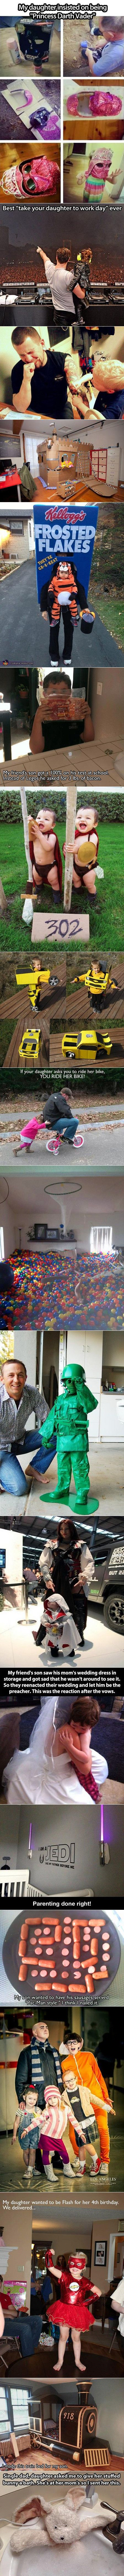 Here are some awesome and geeky parents who are doing it right.